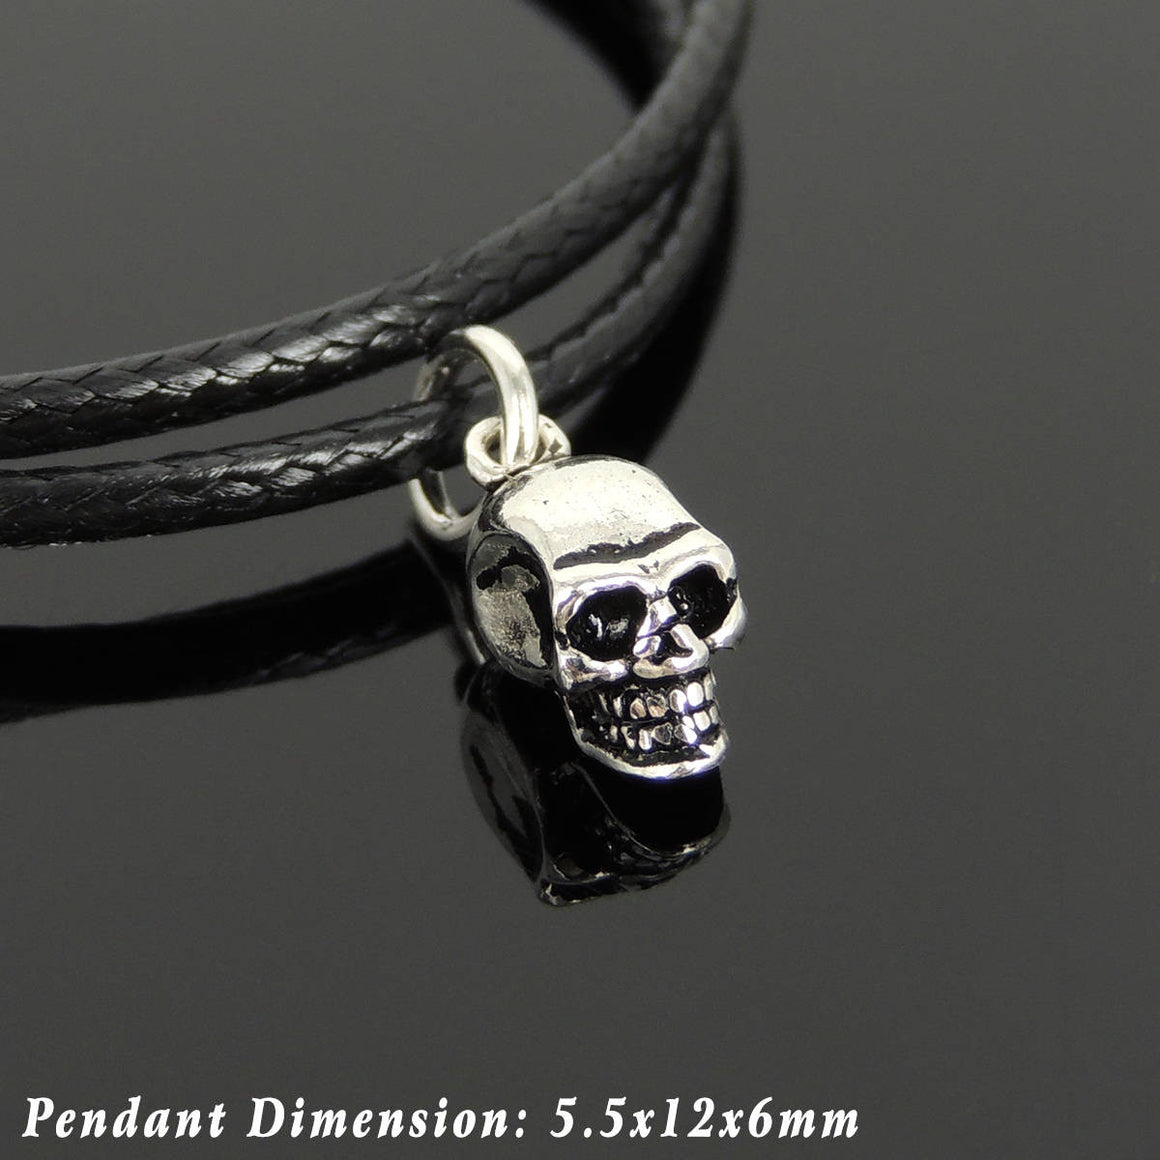 Adjustable Wax Rope Bracelet with S925 Sterling Silver Small Skull Protection Bead for Positive Healing Energy - Handmade by Gem & Silver BR1130